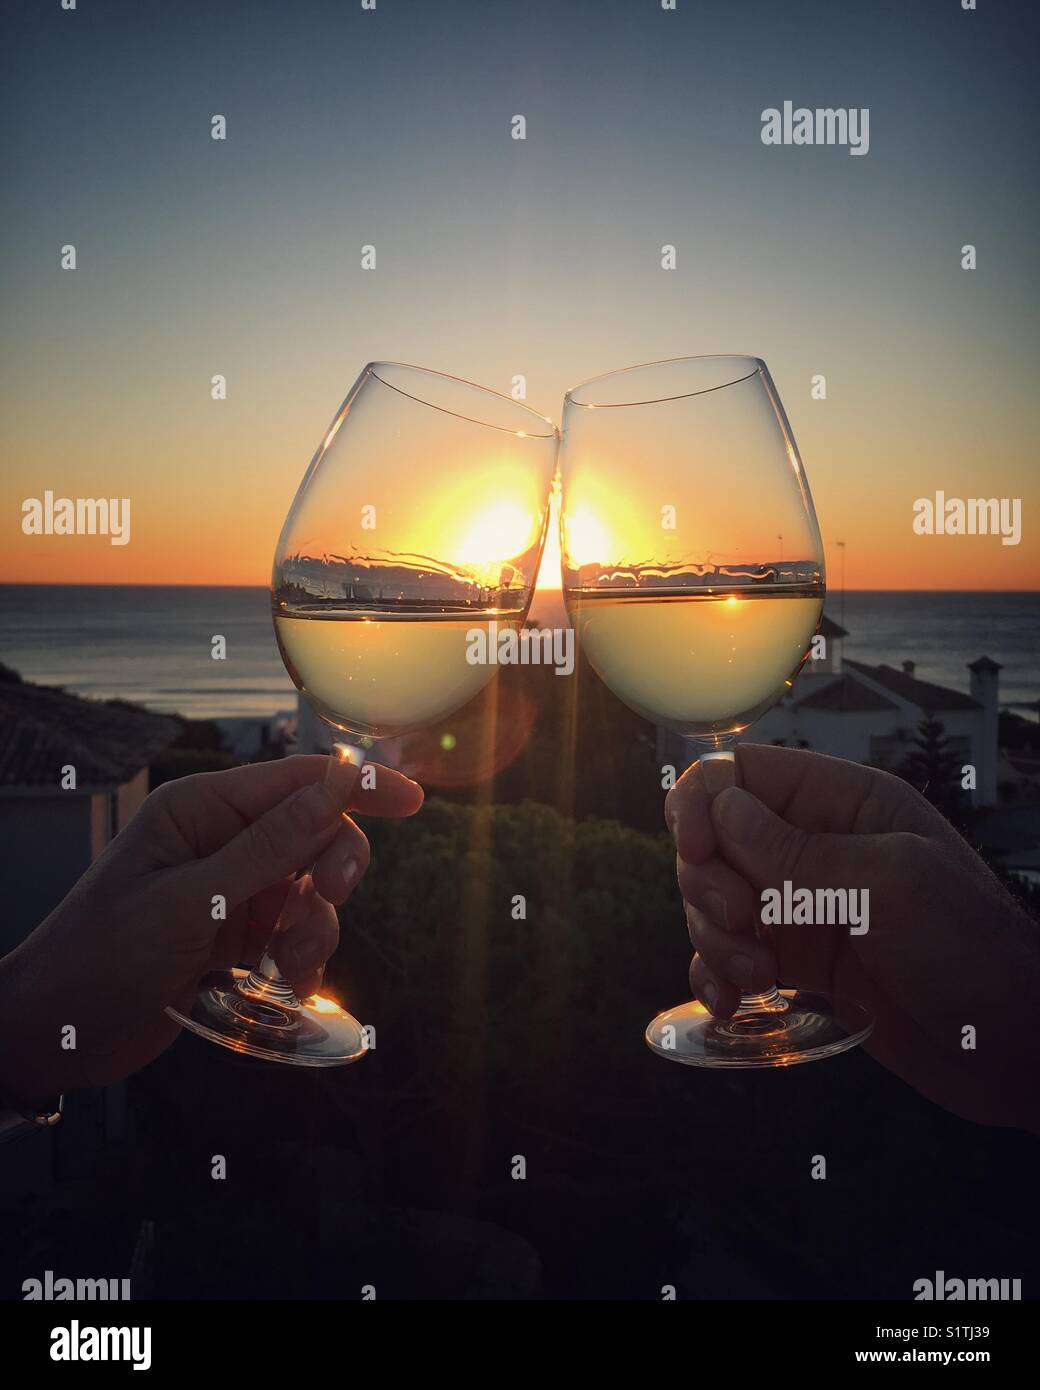 Two glasses clinking at sunset. Cheers! - Stock Image